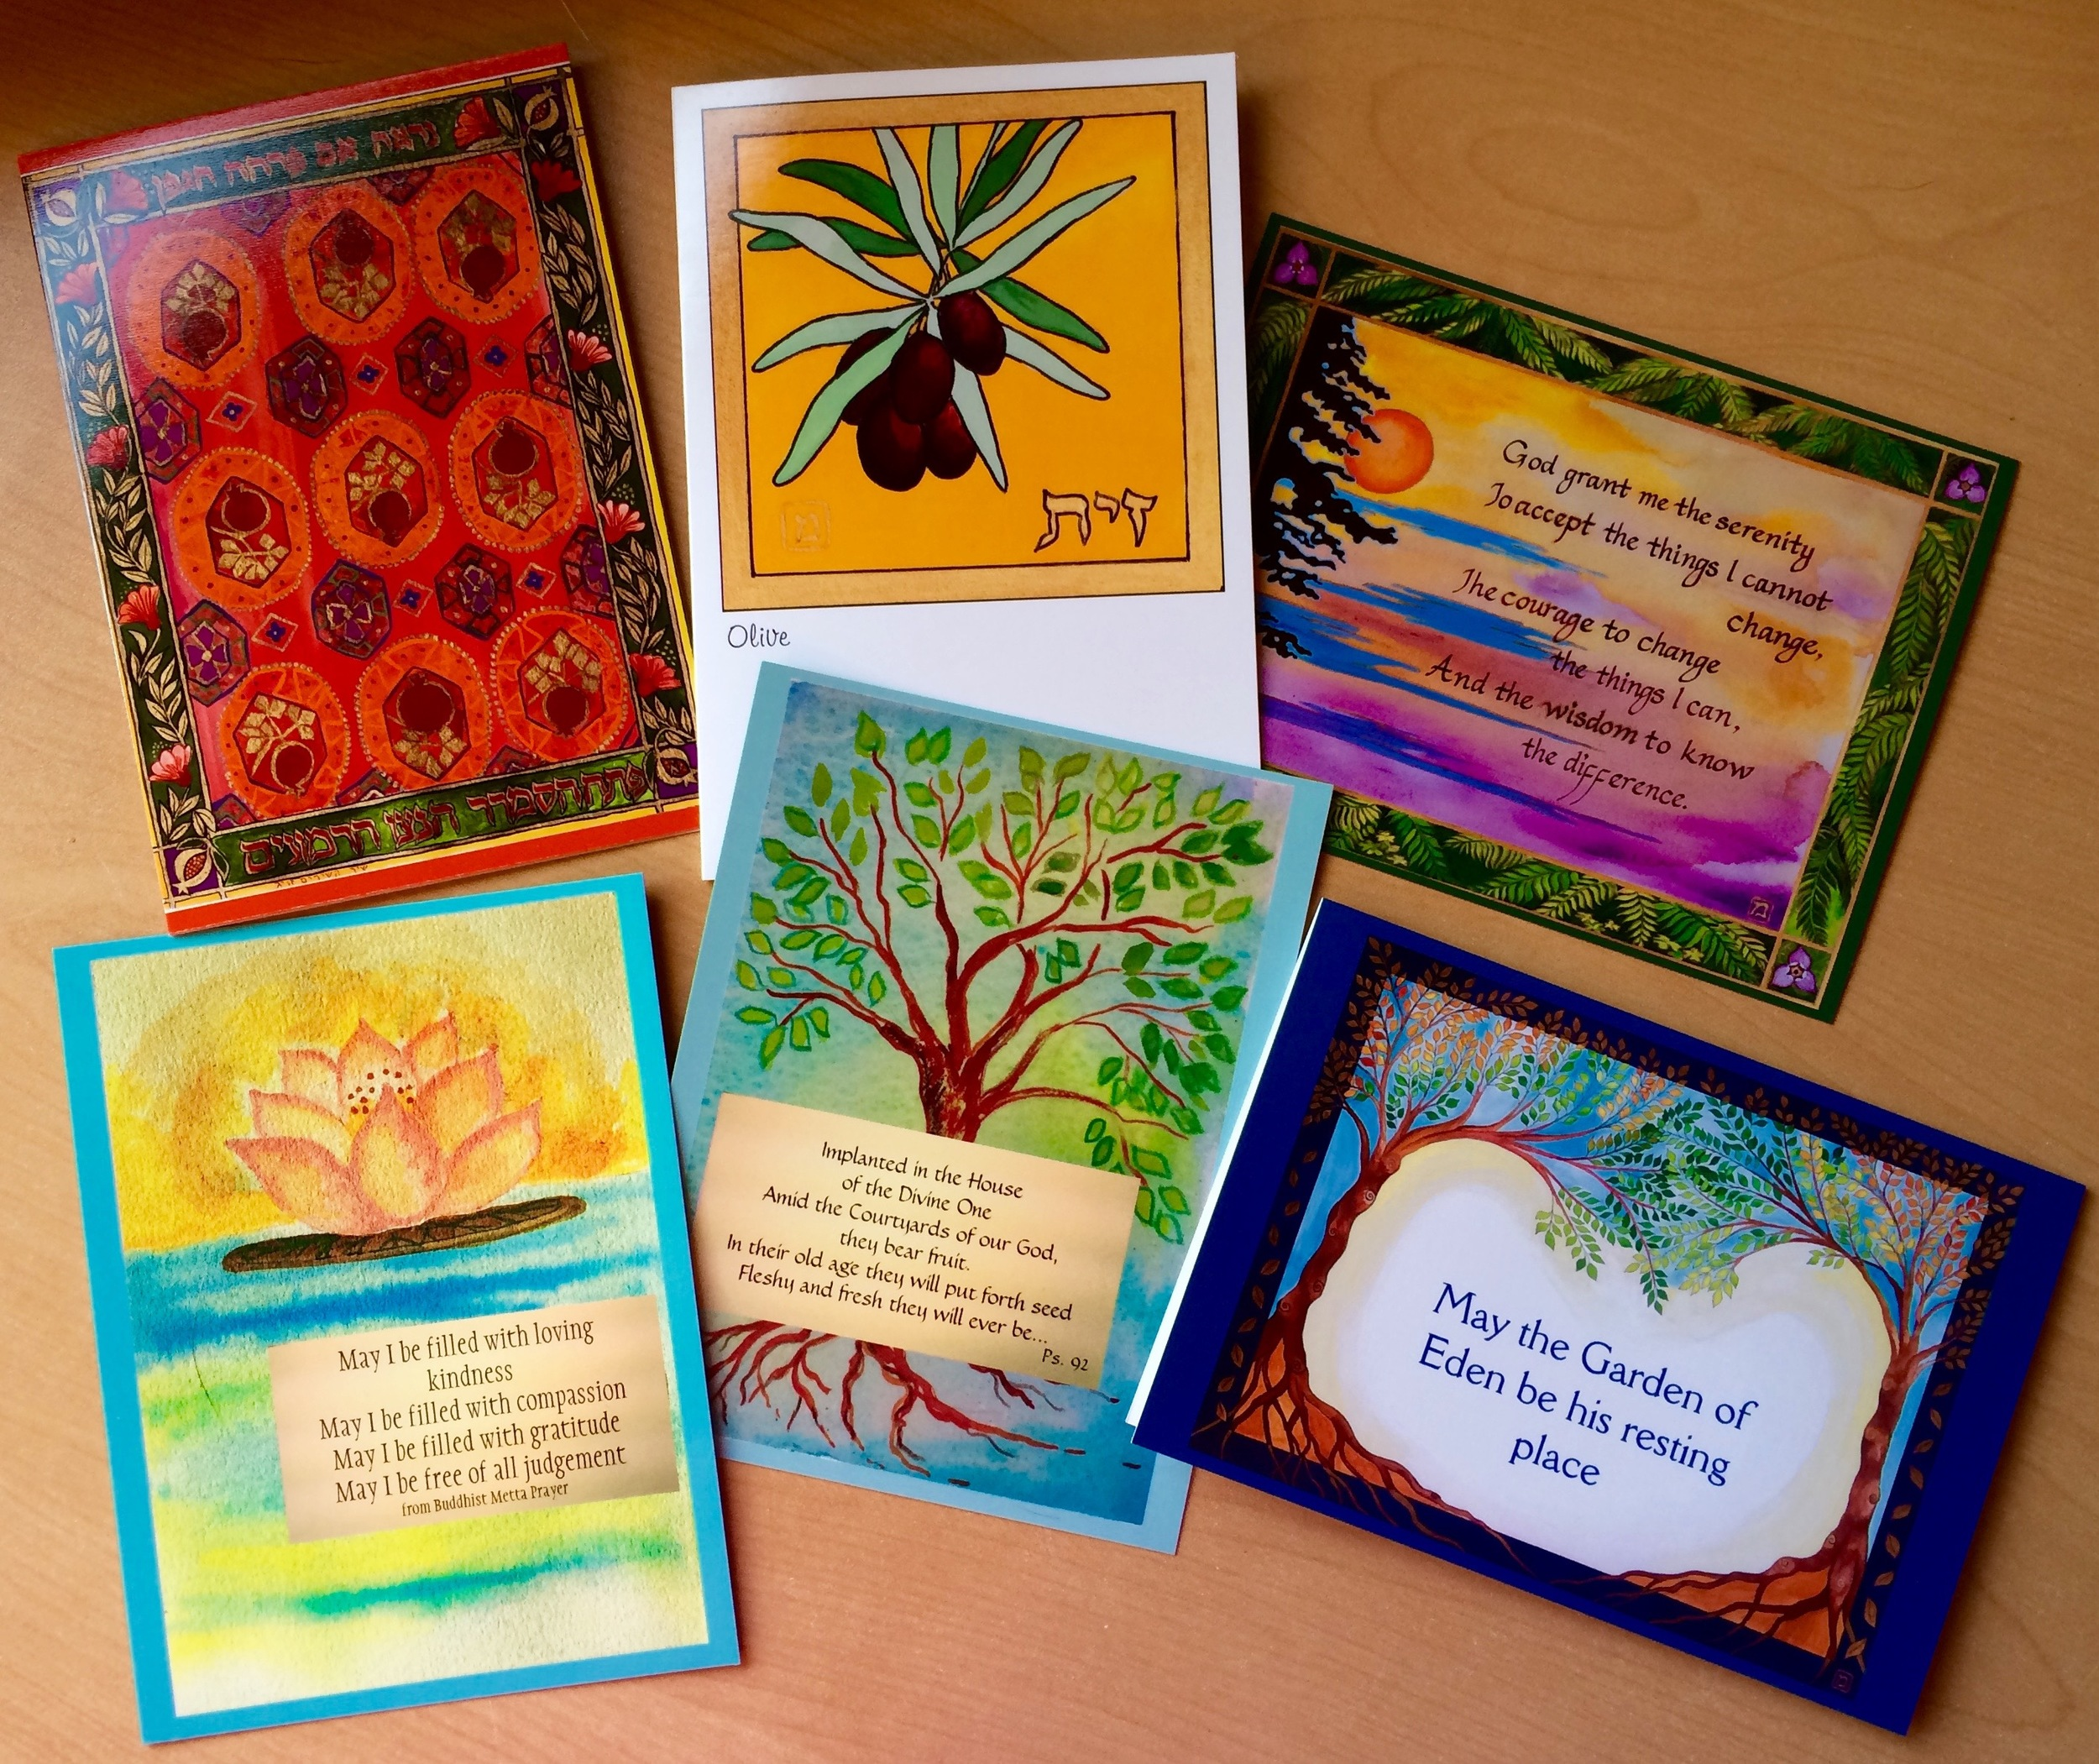 A small selection of cards